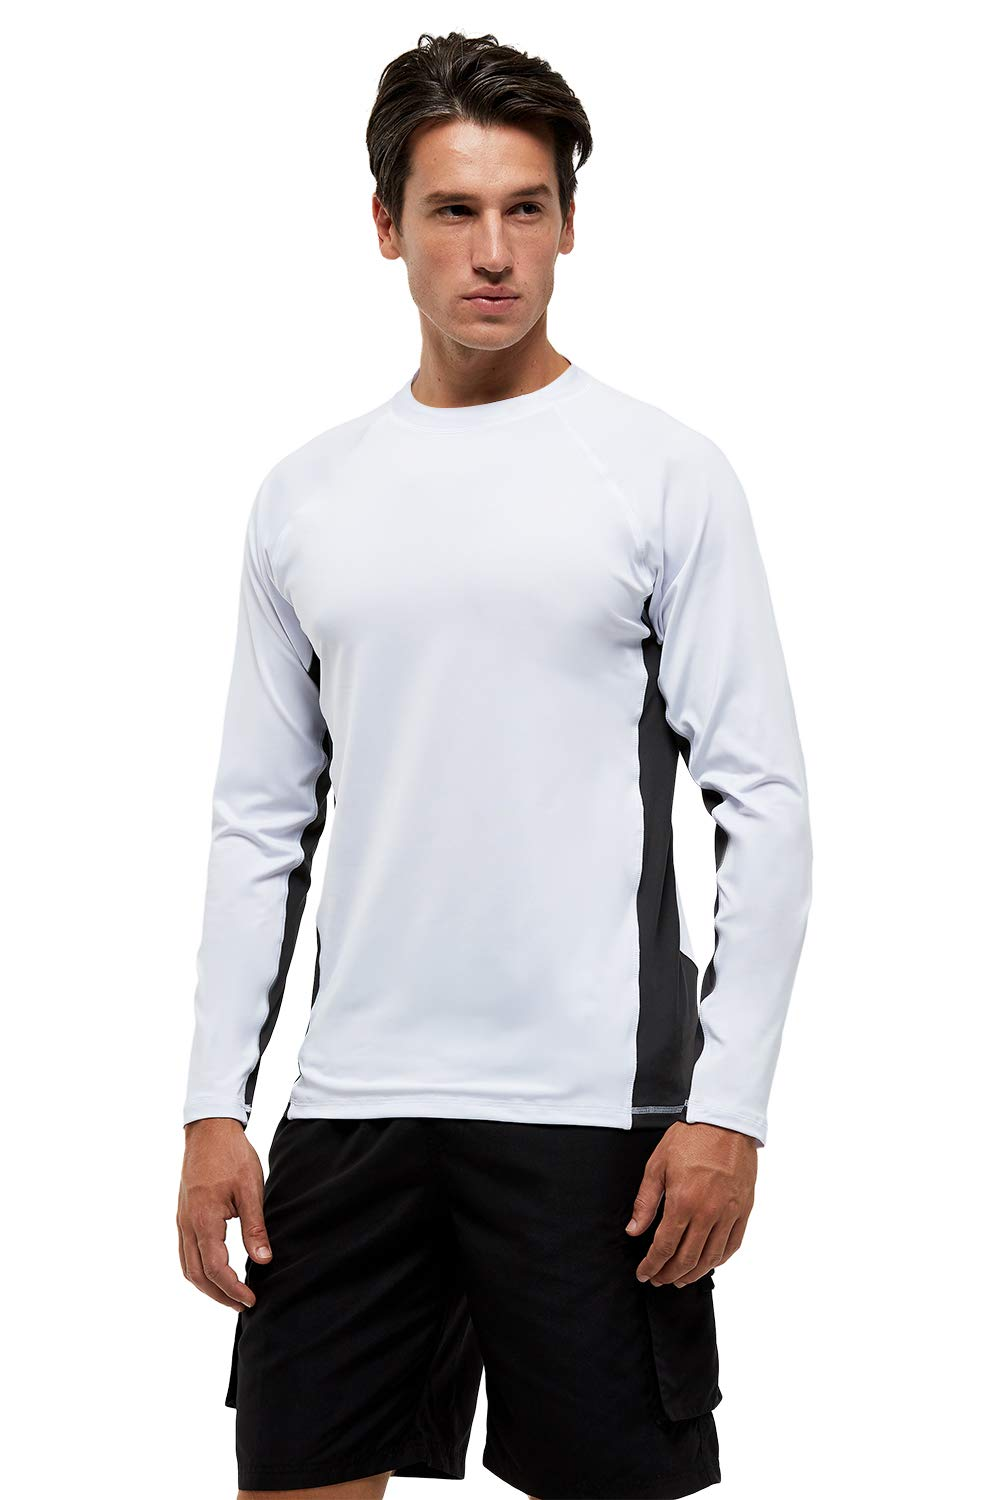 Mens Swim Shirts UPF 50+ UV Sun Protection Rashguard Long Sleeve Outdoor Dri-fit T-Shirt for Running,Fishing,Hiking,Workout